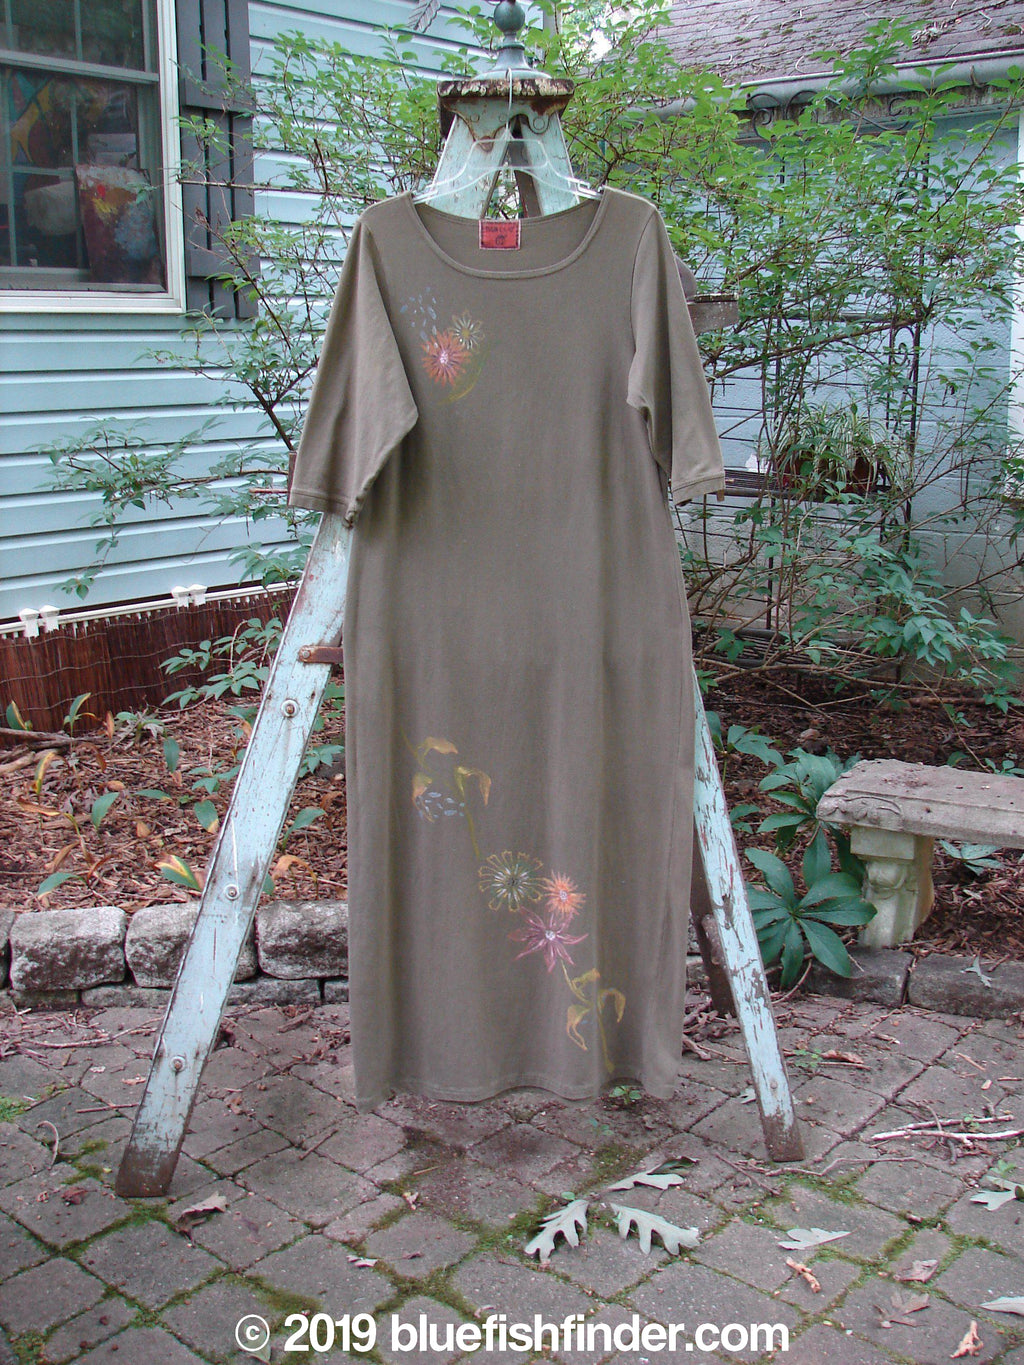 Vintage Blue Fish Clothing Barclay Tide Dress Floral Olive Altered Size 0- Bluefishfinder.com